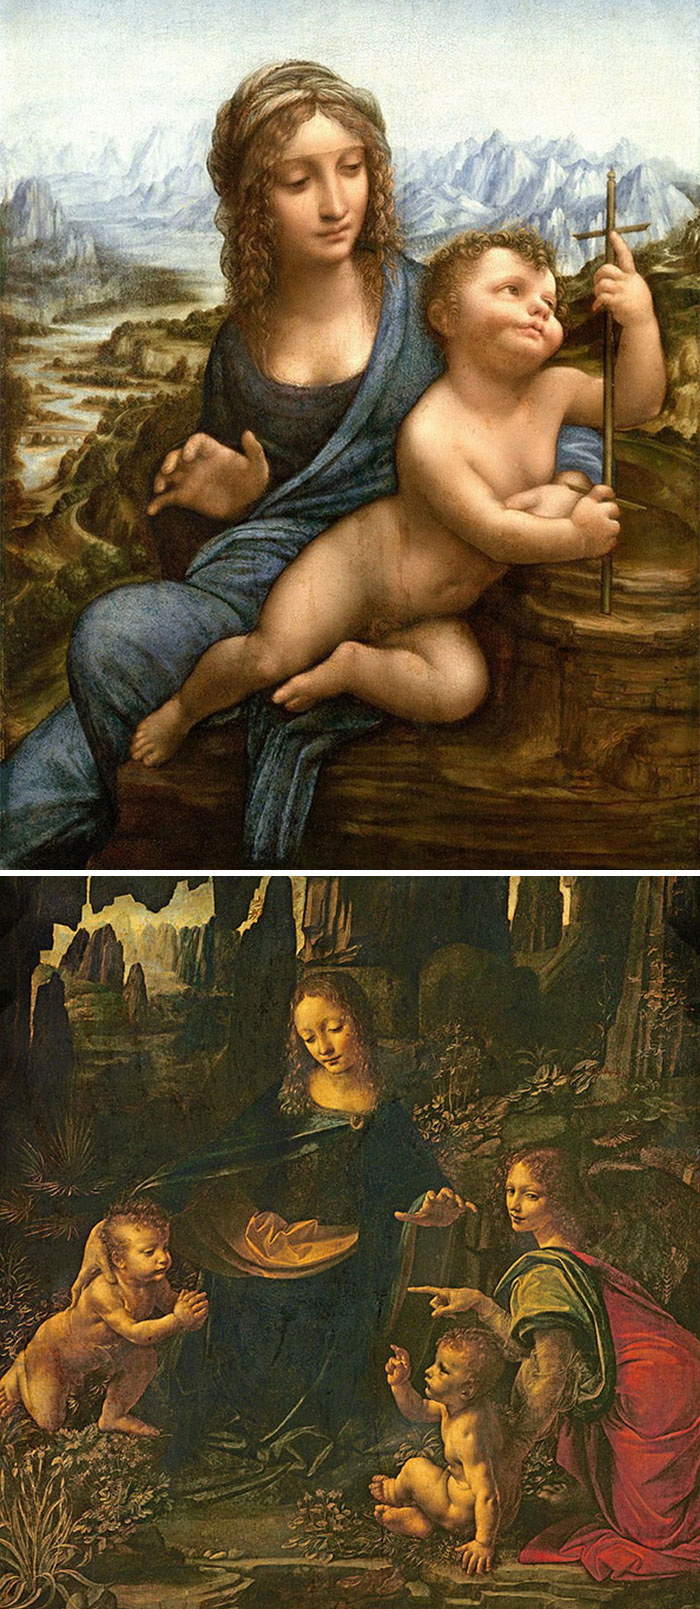 Lord Of The Rings Landscapes With Weird Blue Mist And The Same Wavy-Haired Aristocratic-Nose Madonna, It's Da Vinci